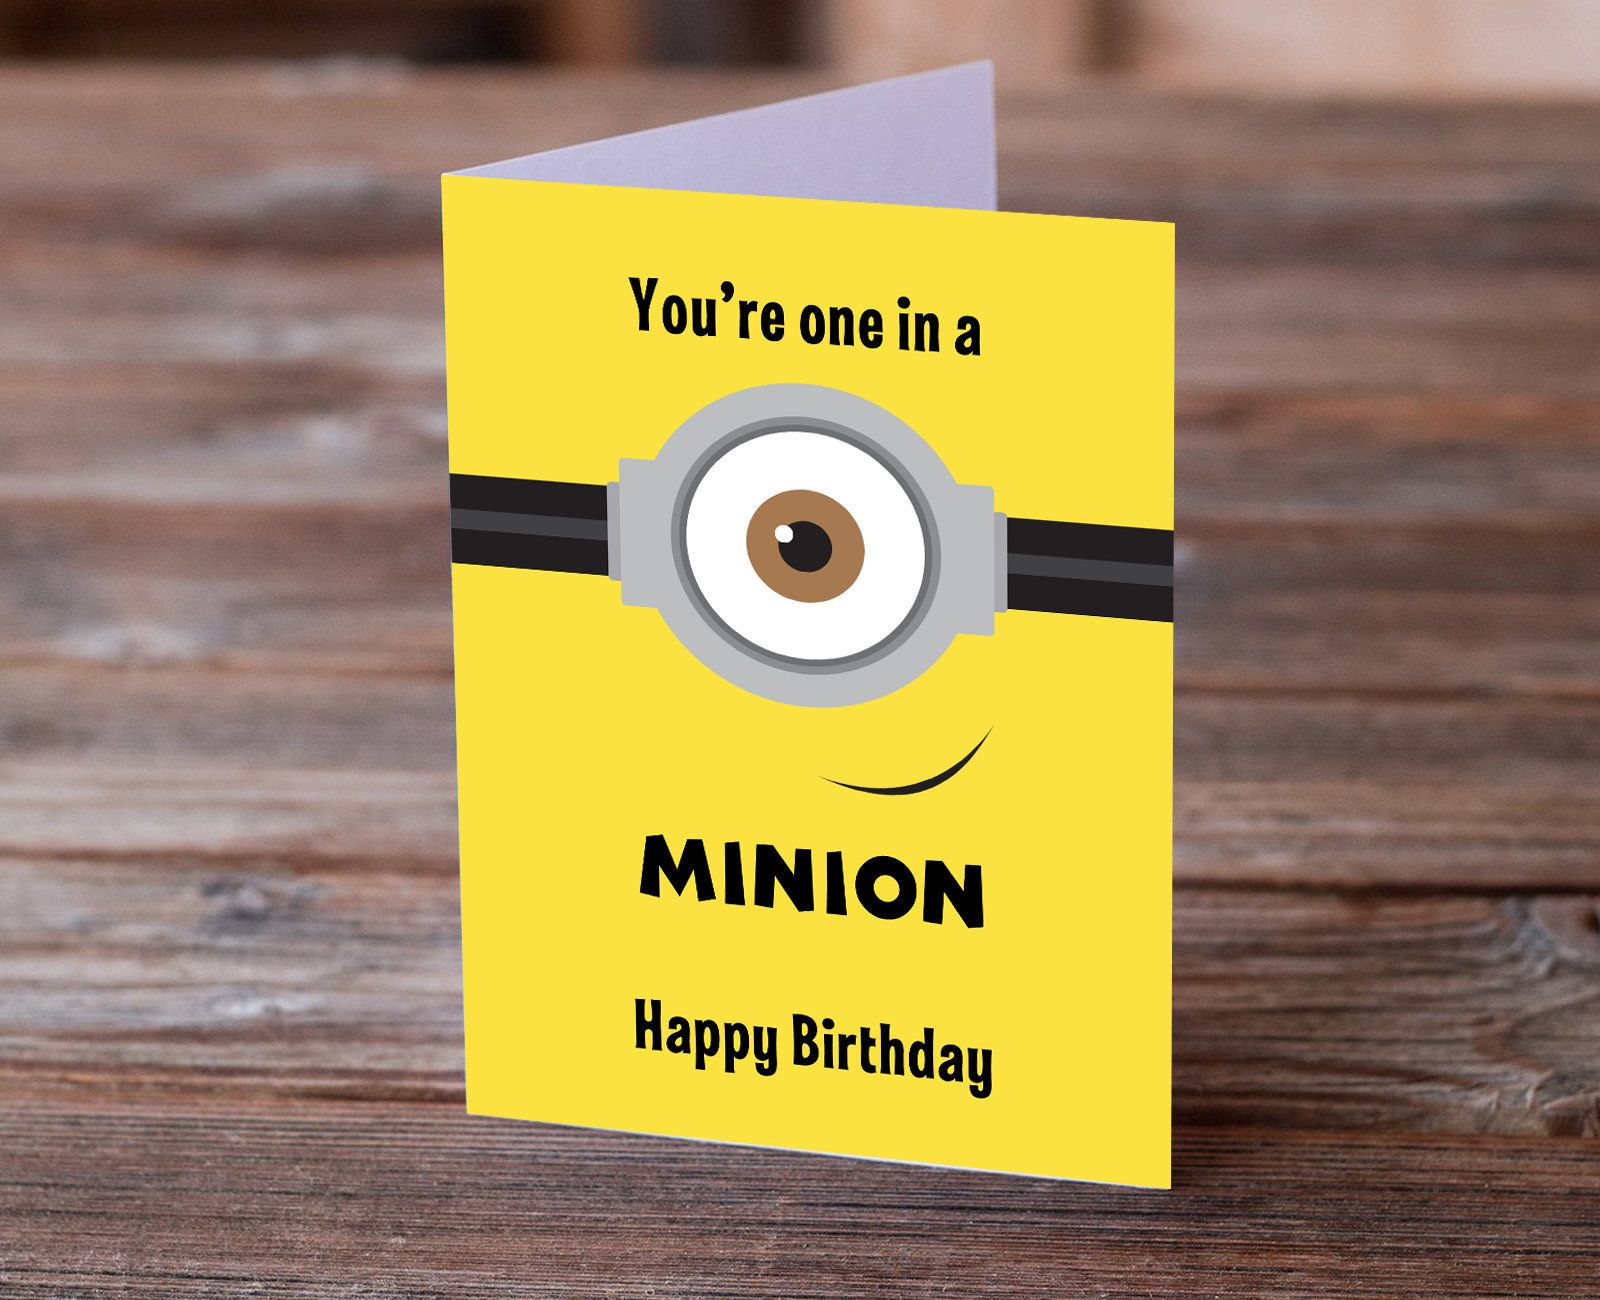 Minions Despicable Me Birthday Card Minions Bday Card Minion Etsy Minion Card Minion Birthday Card Birthday Card Pictures